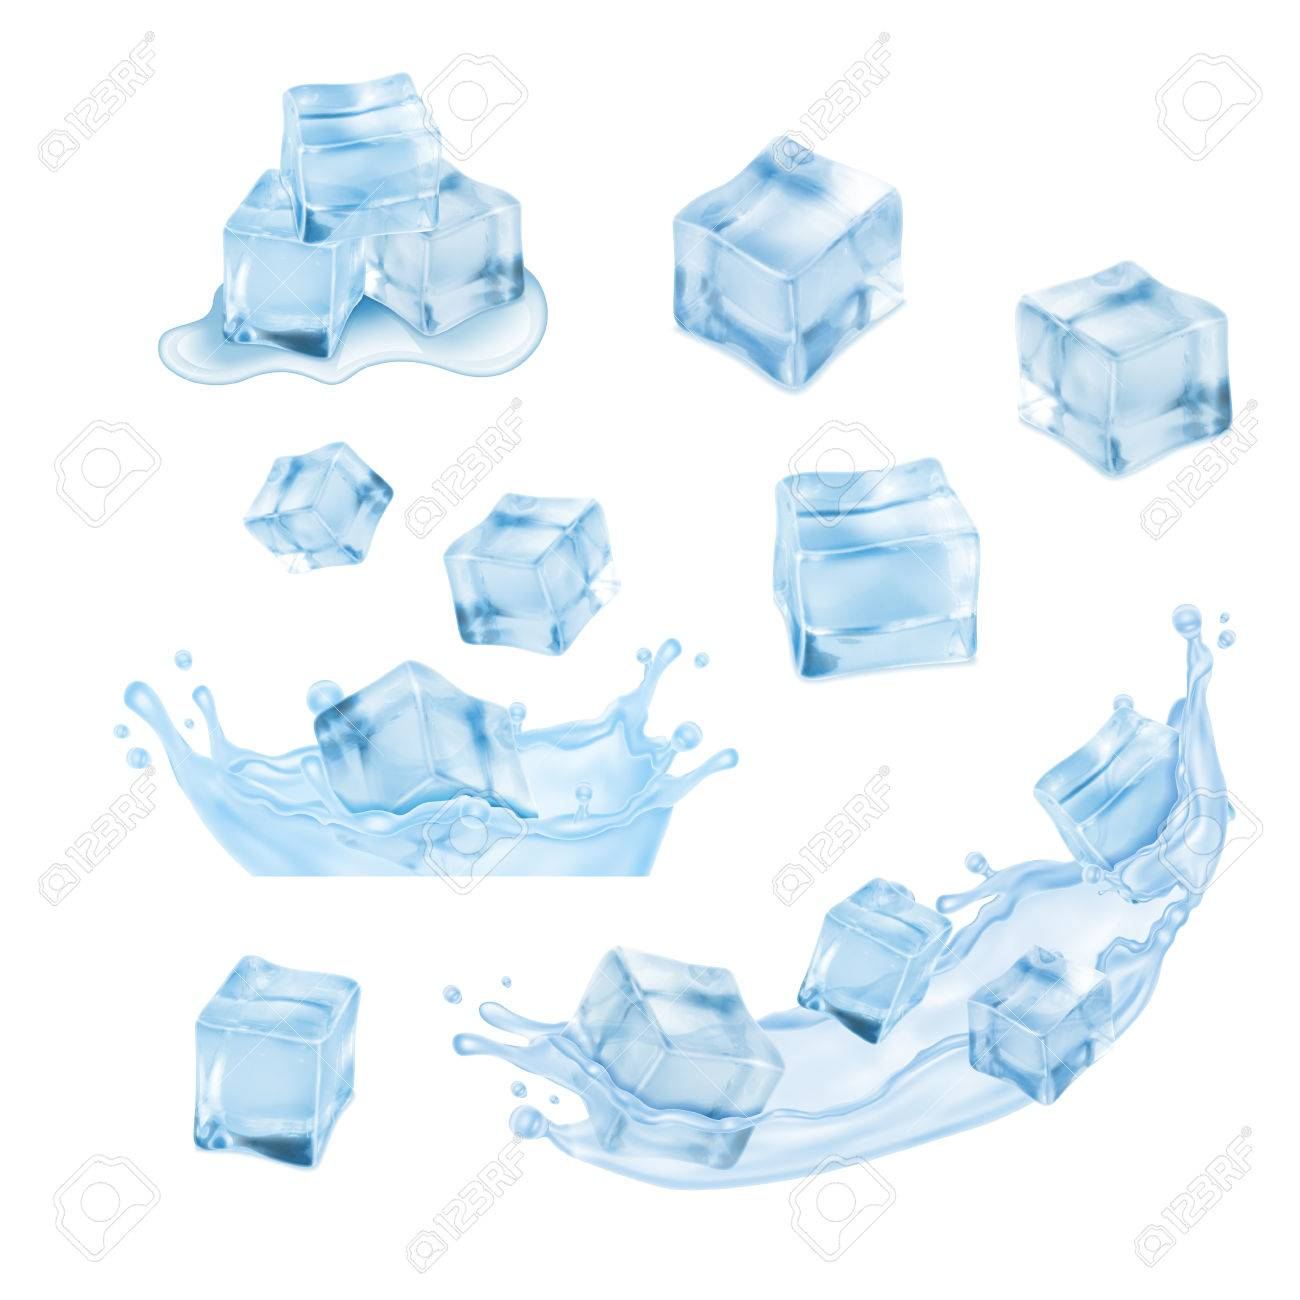 ice cubes with water splash vector icon set royalty free cliparts vectors and stock illustration image 52125905 ice cubes with water splash vector icon set